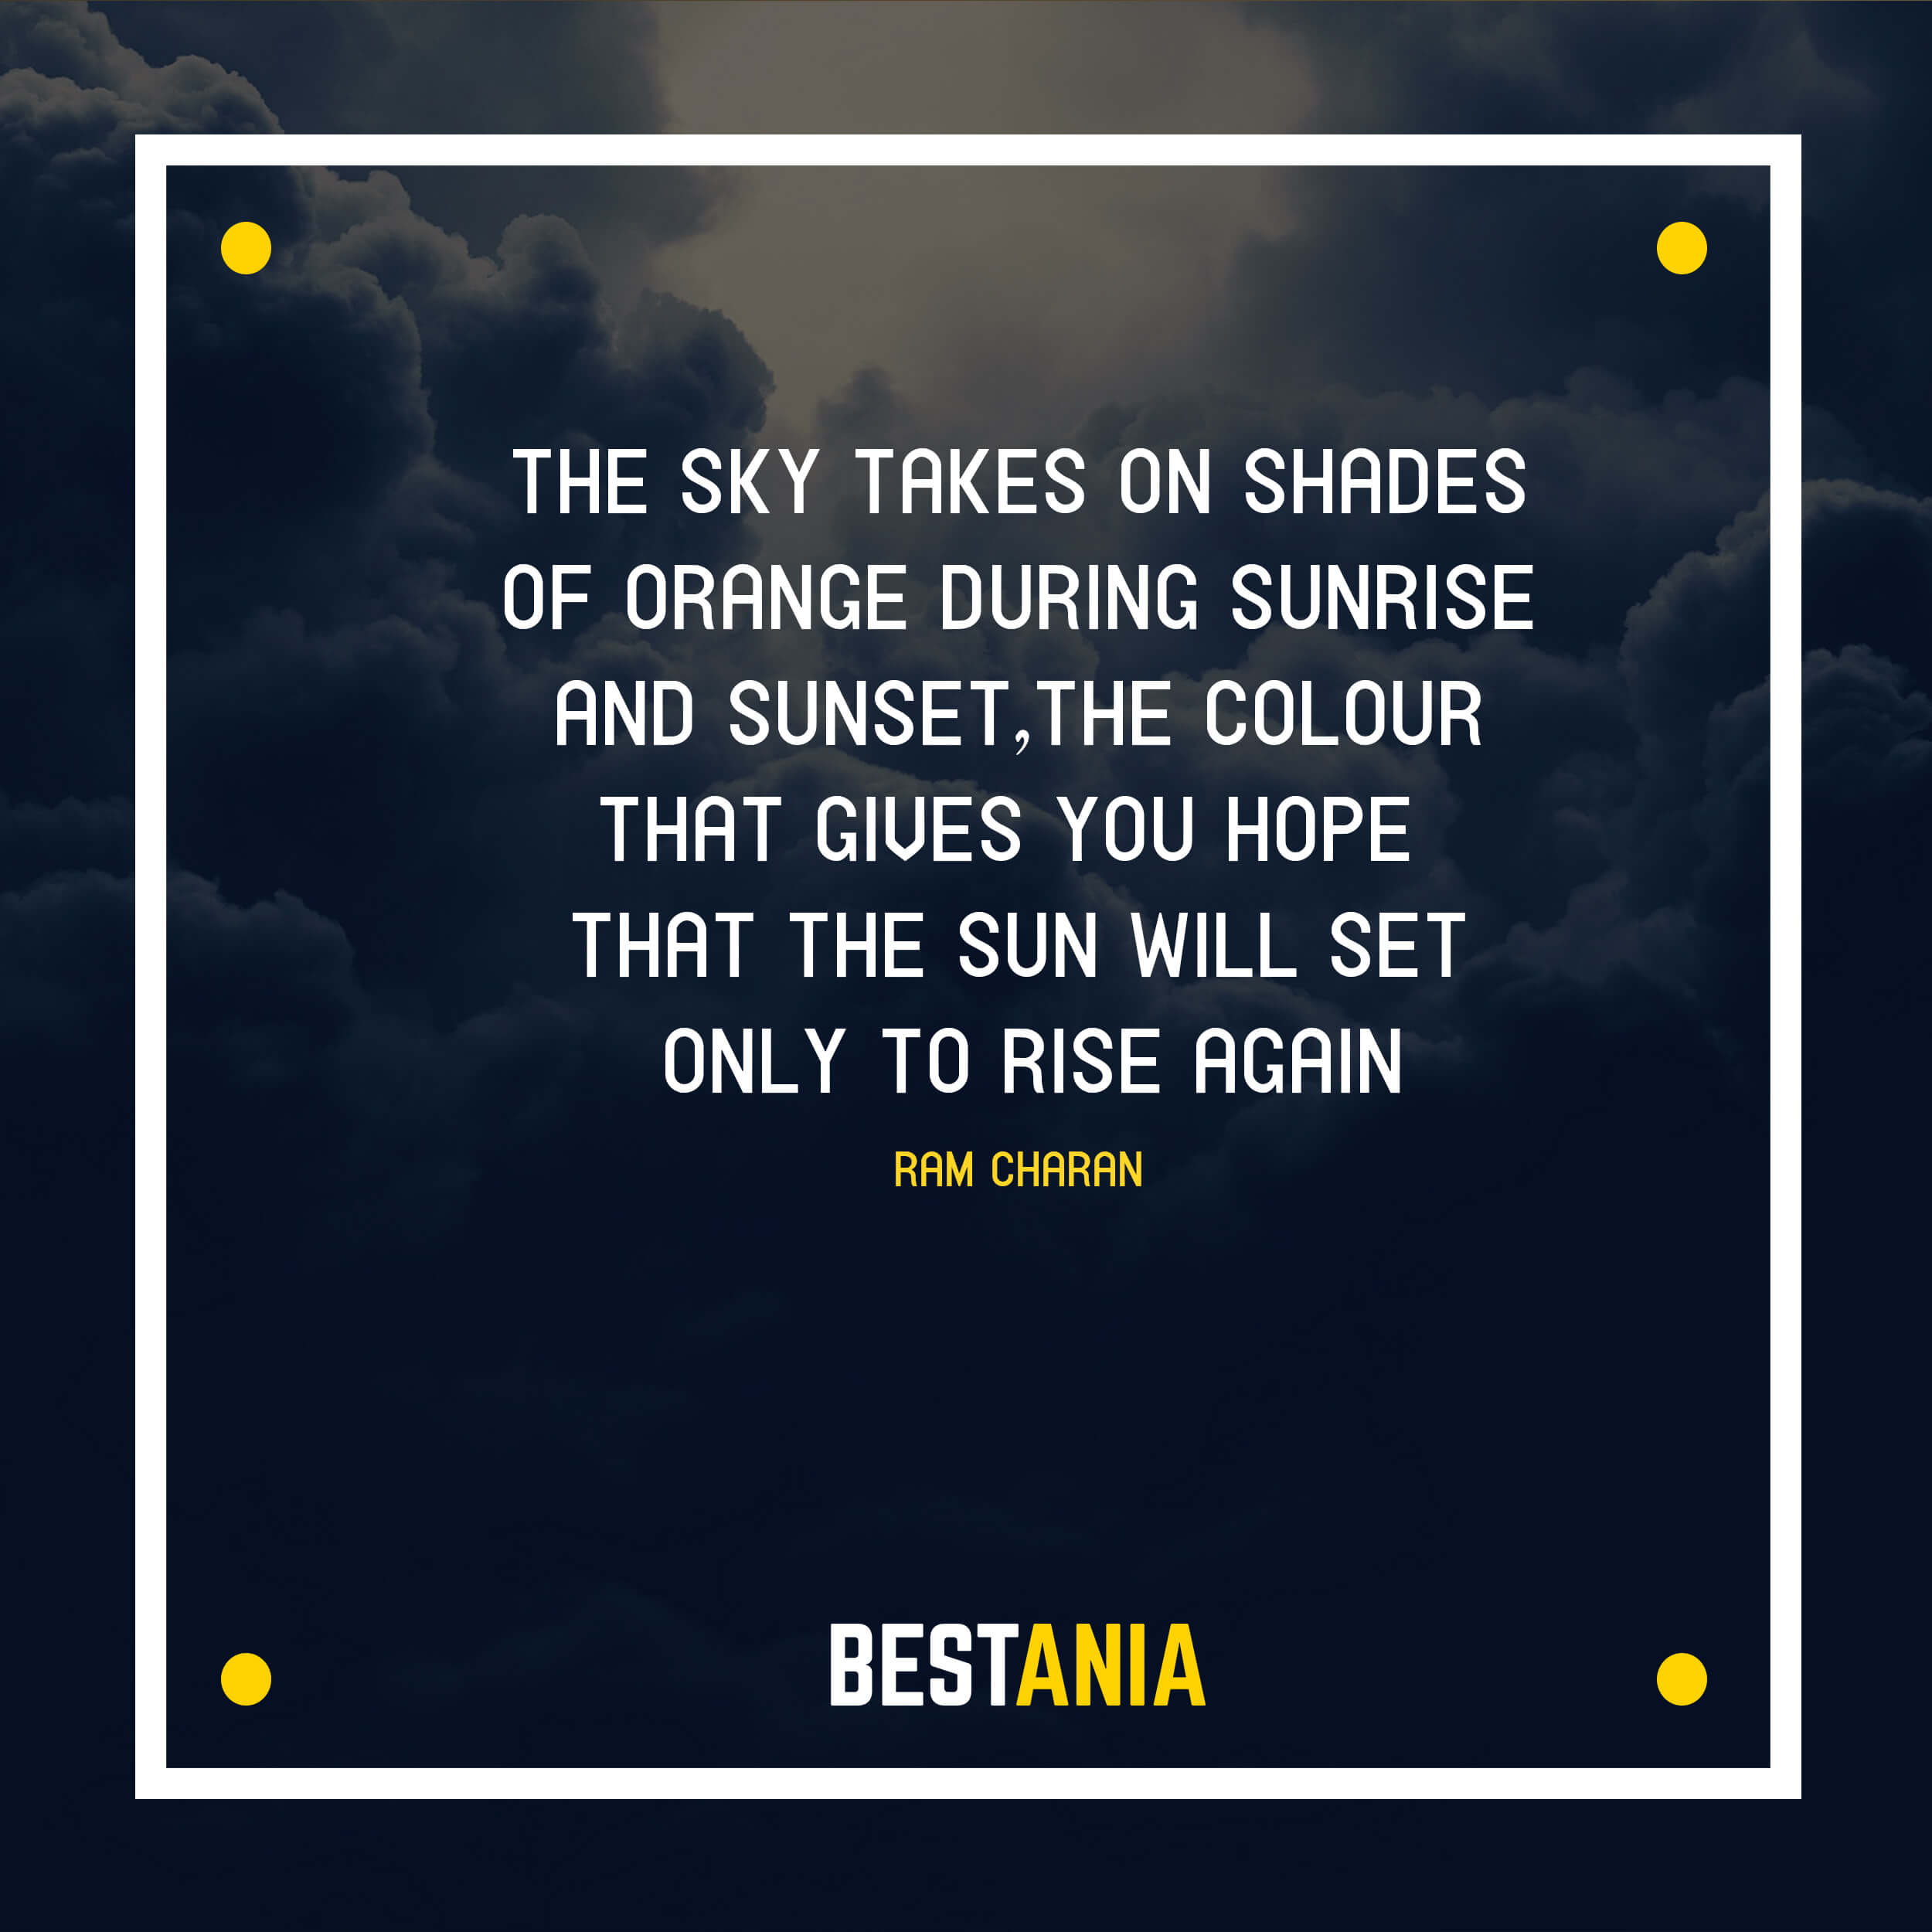 """THE SKY TAKES ON SHADES OF ORANGE DURING SUNRISE AND SUNSET, THE COLOUR THAT GIVES YOU HOPE THAT THE SUN WILL SET ONLY TO RISE AGAIN."" RAM CHARAN"